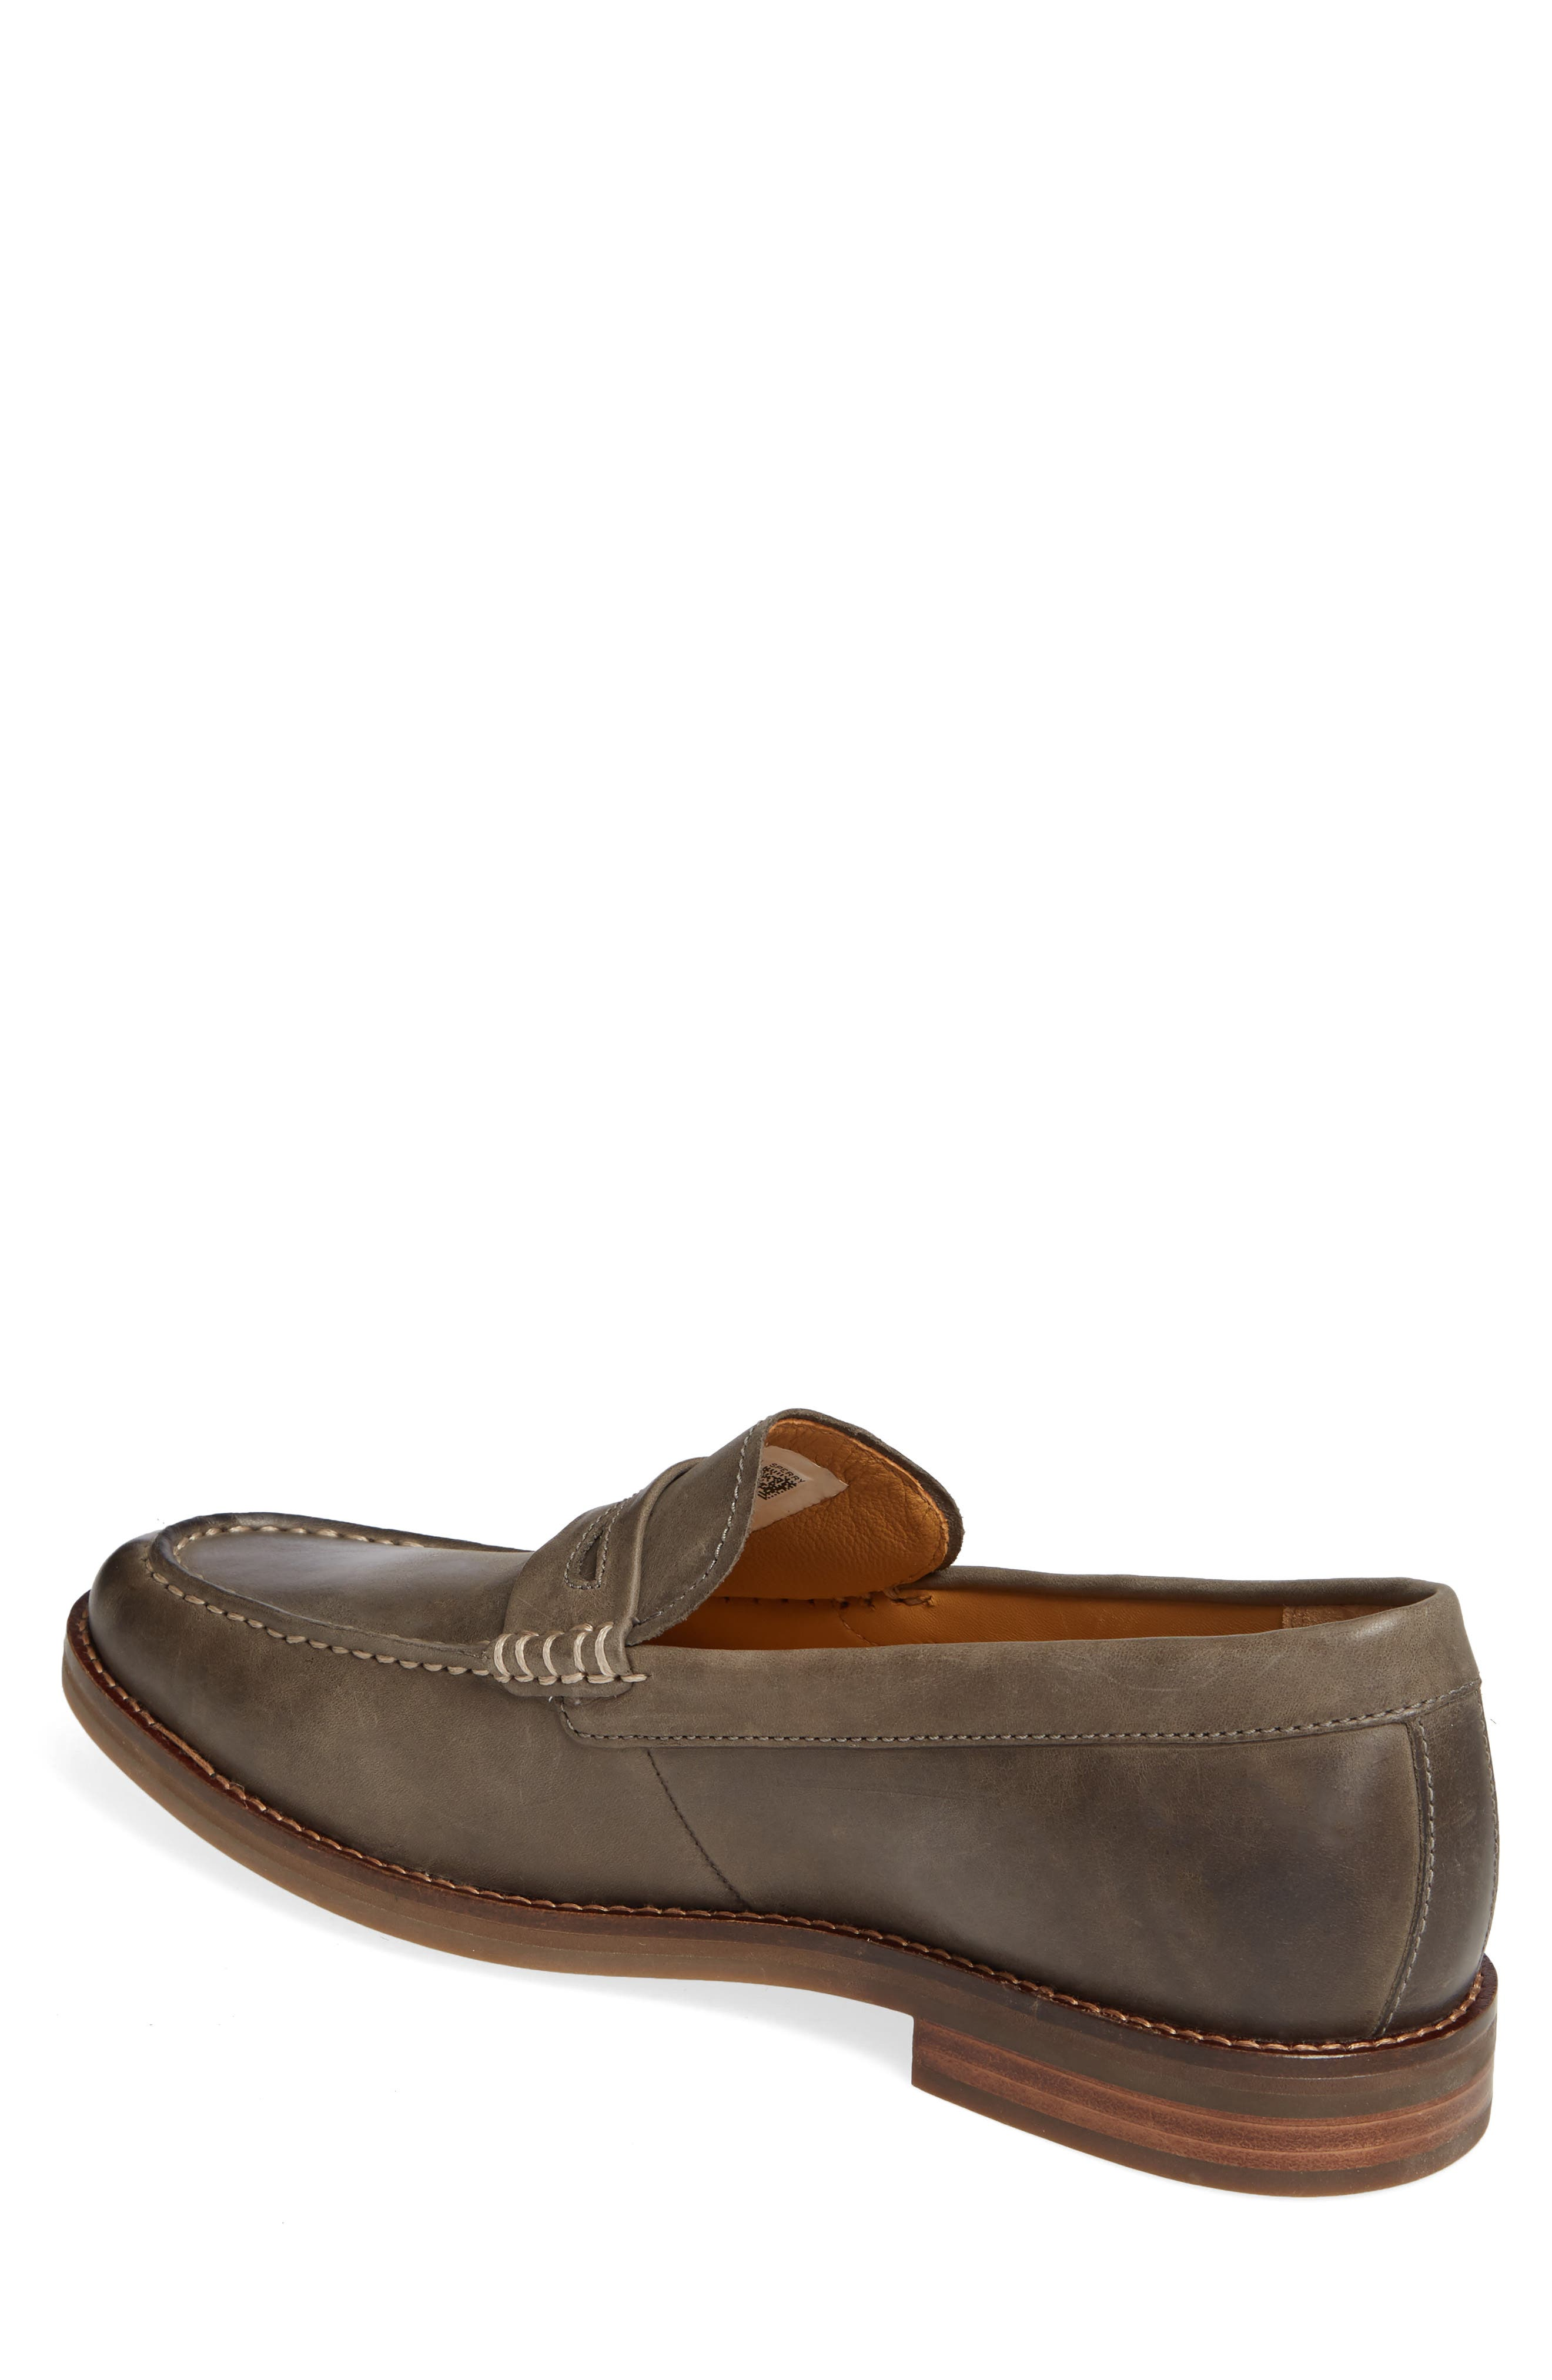 SPERRY, Exeter Penny Loafer, Alternate thumbnail 2, color, GREY